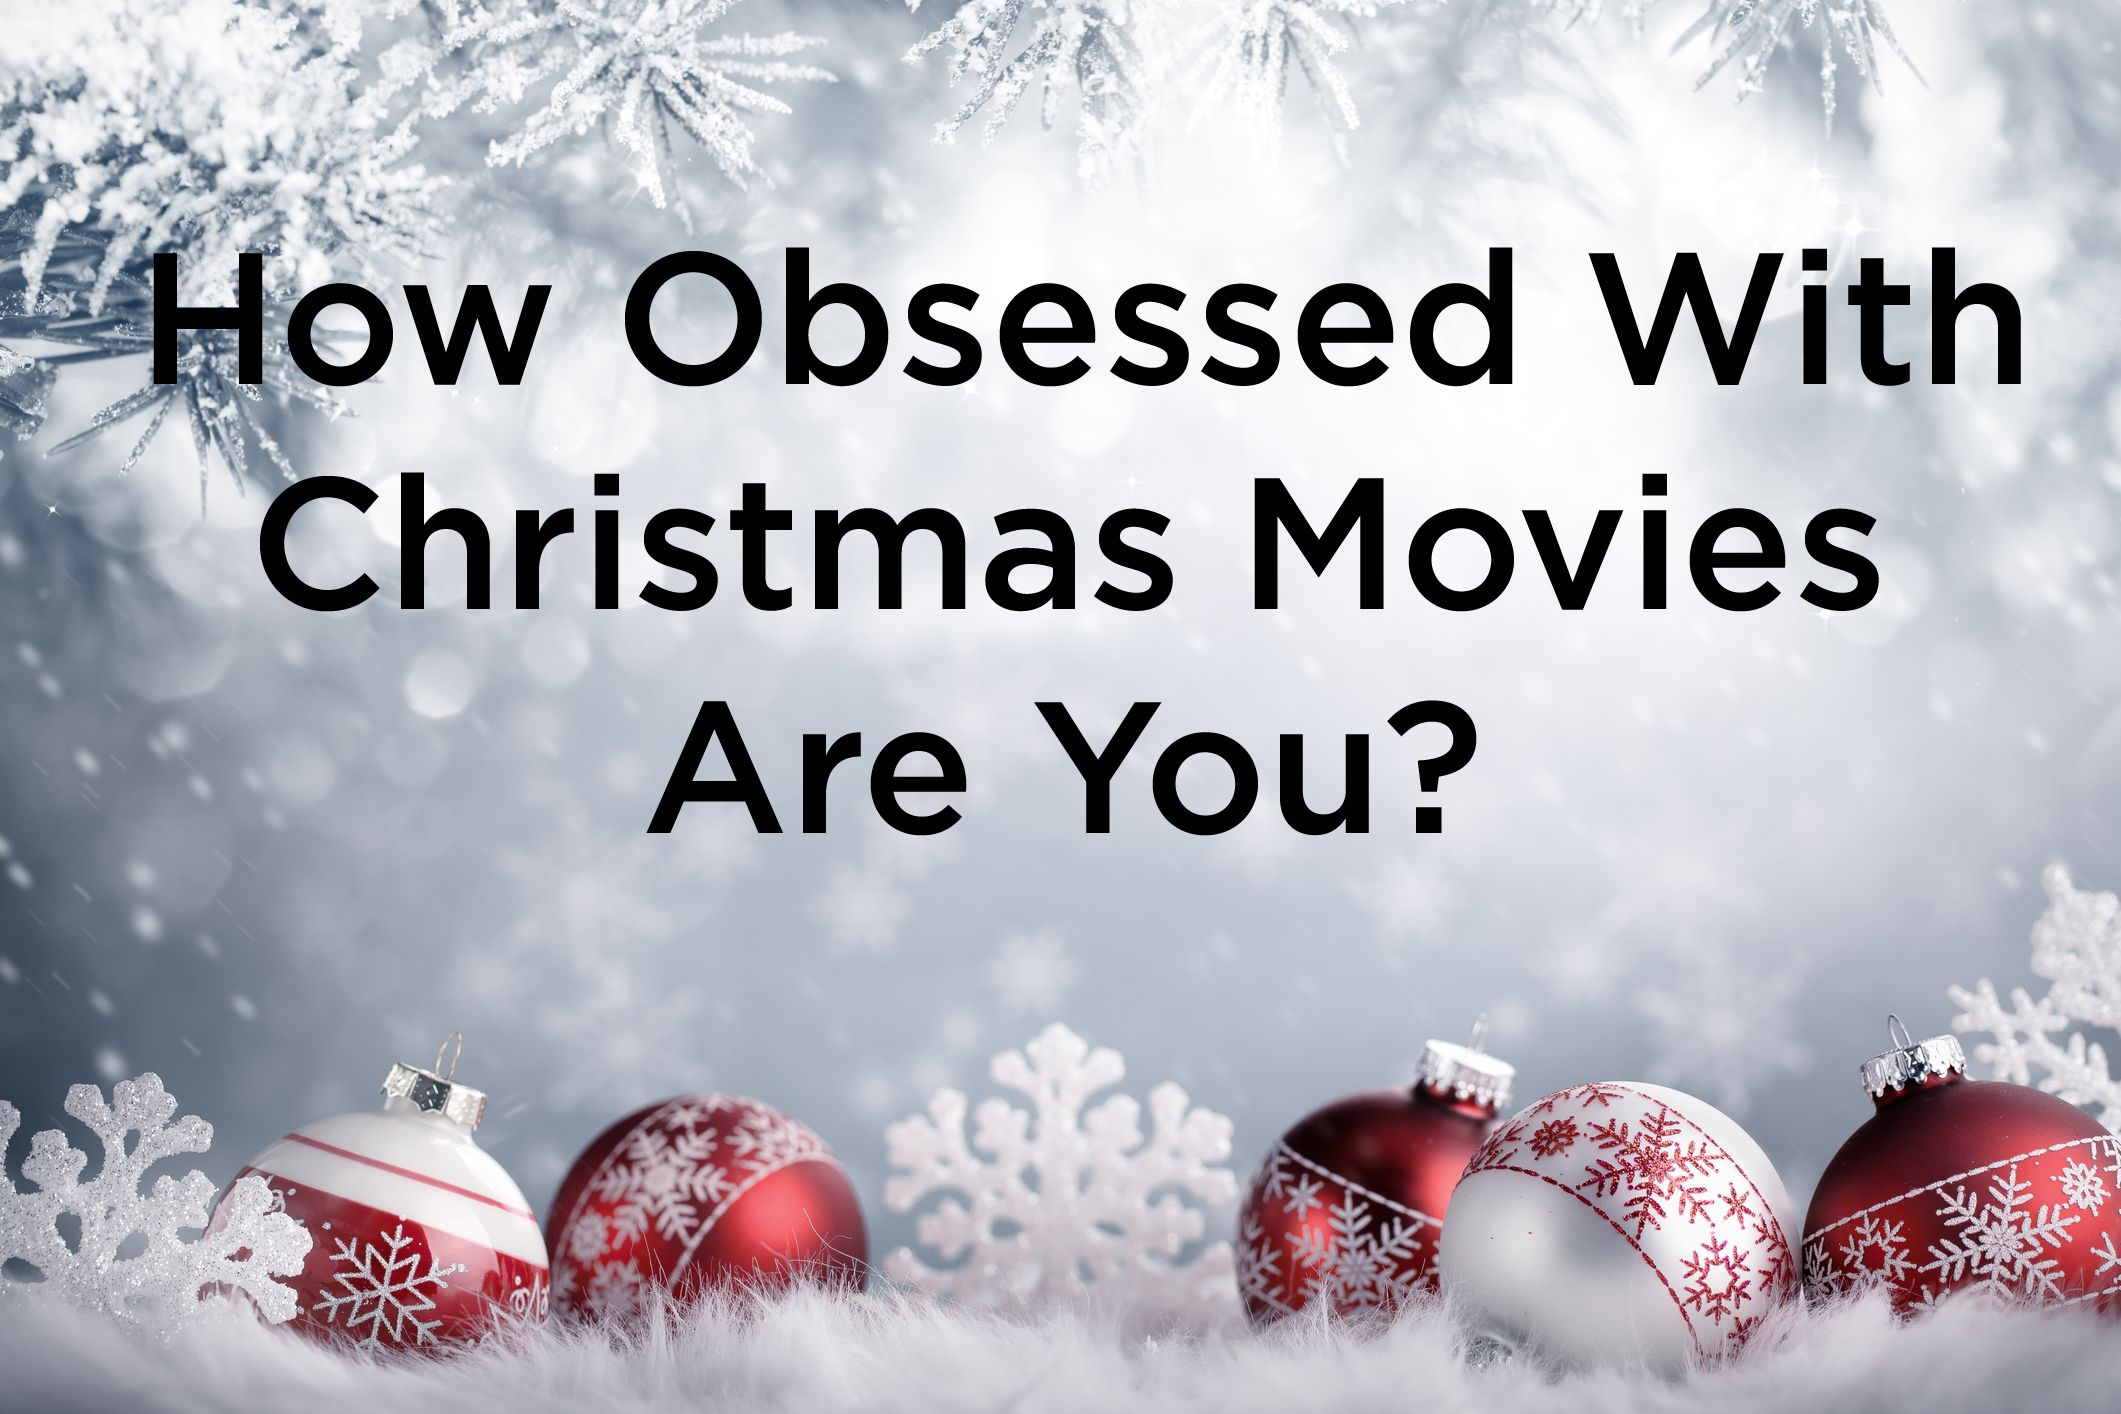 How Many Classic Christmas Movies Have You Seen Classic Christmas Movies Christmas Movies Christmas Quiz Buzzfeed